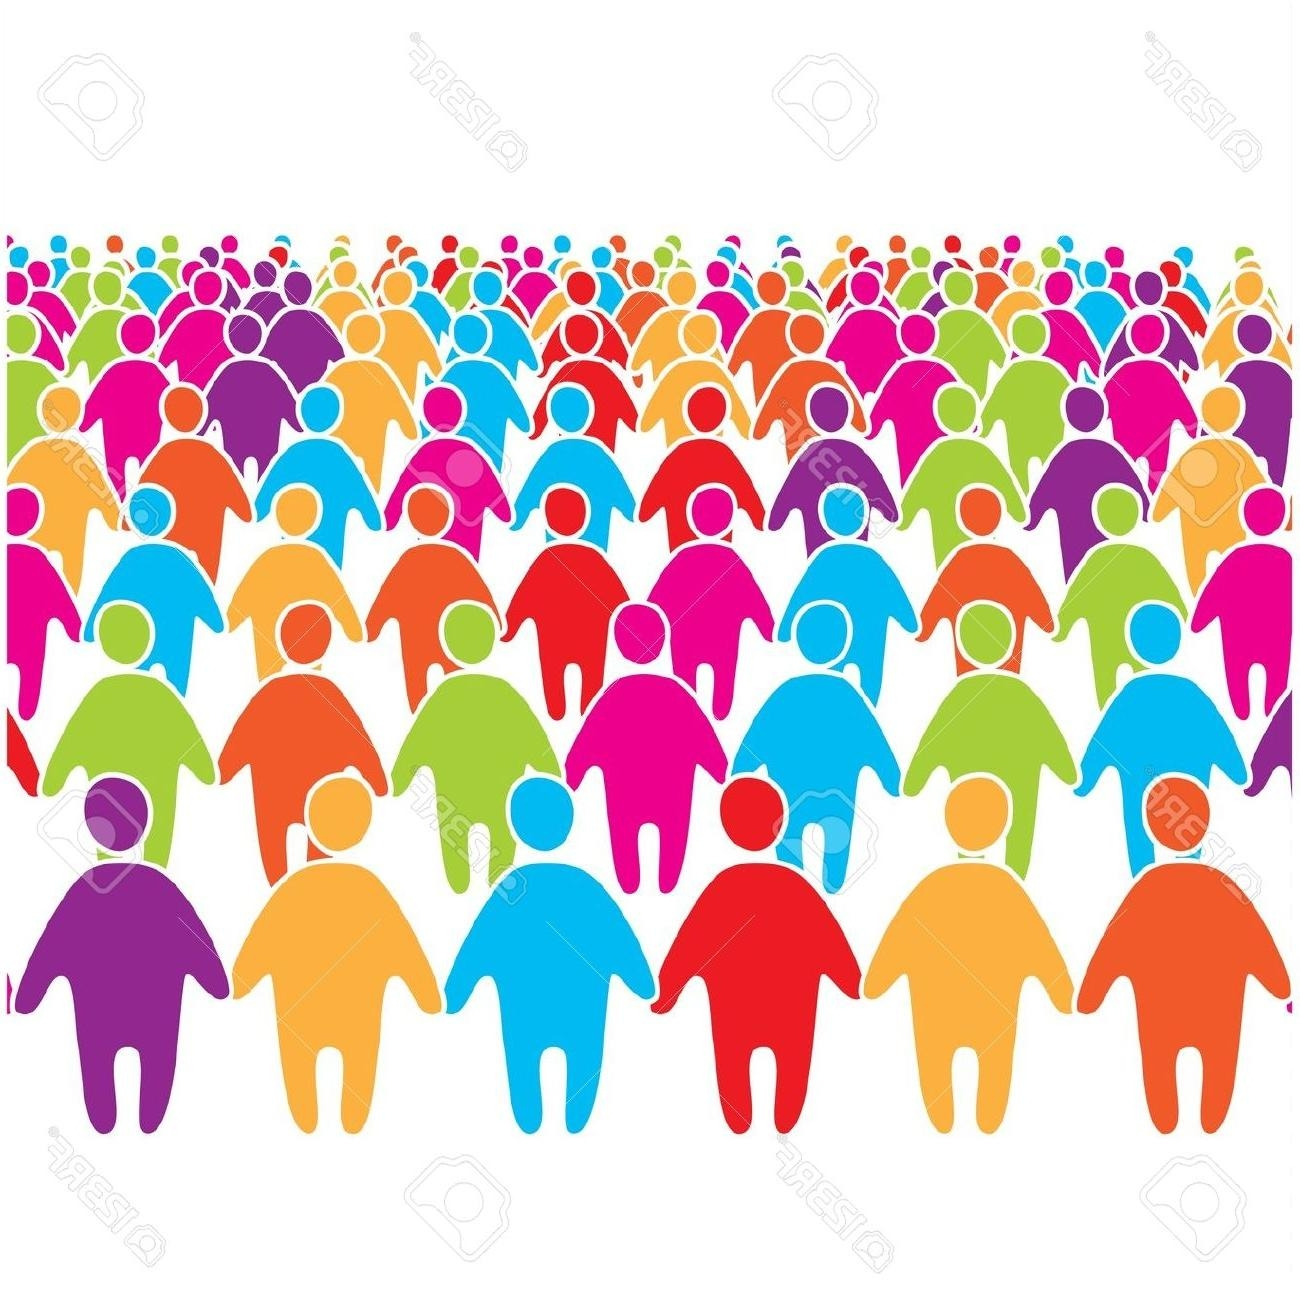 Crowd of people clipart Elegant Crowd clipart large crowd.